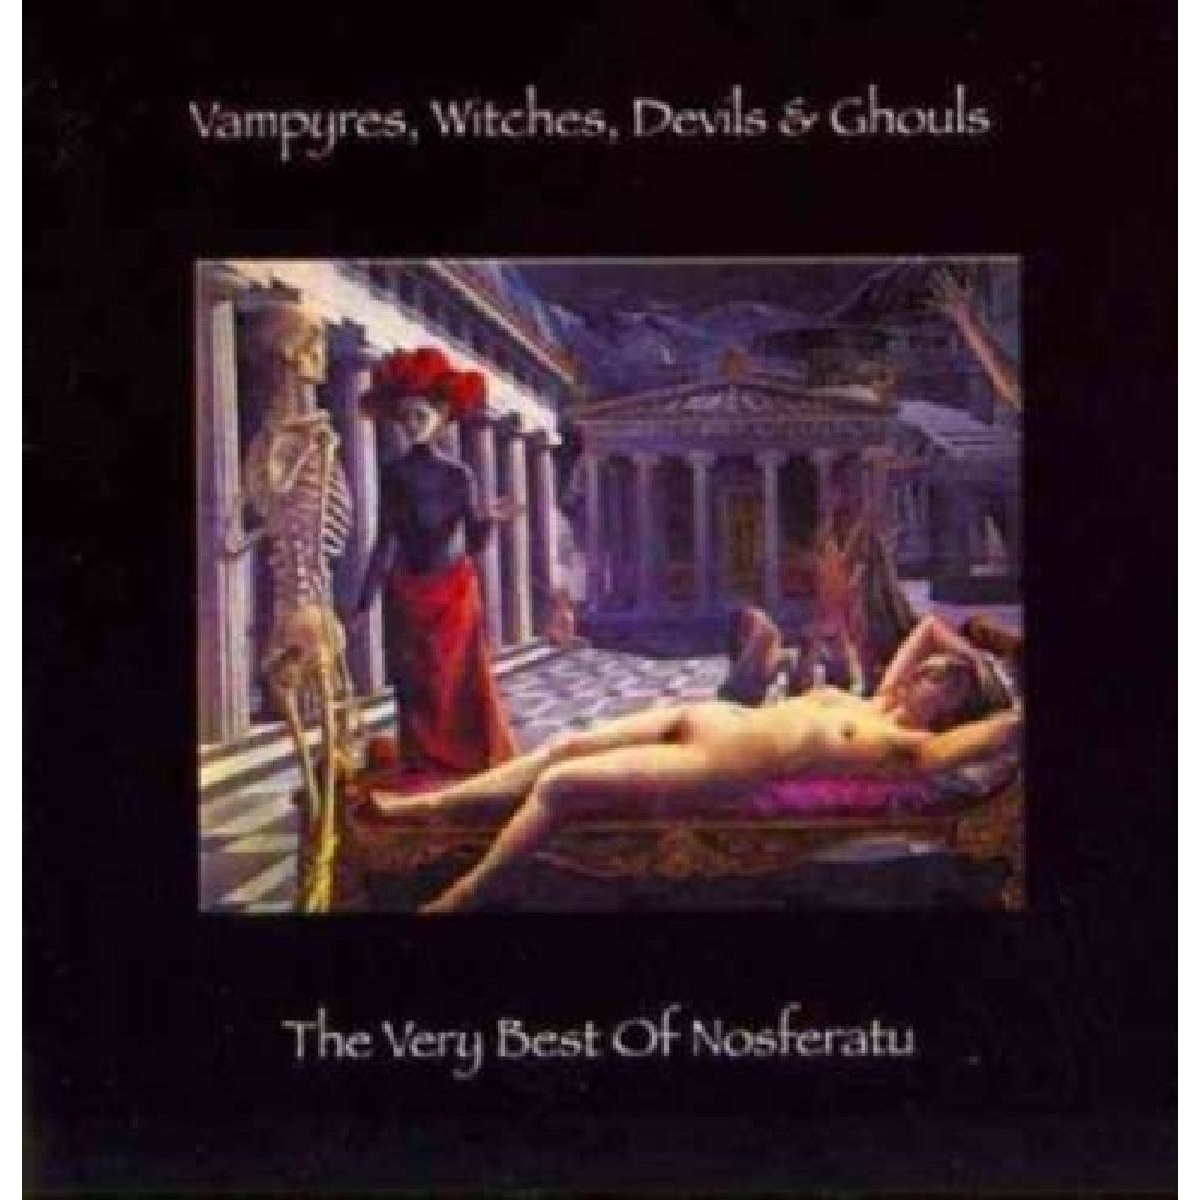 Nosferatu Vampyres, Witches, Devils & Ghouls... The Very Best Of